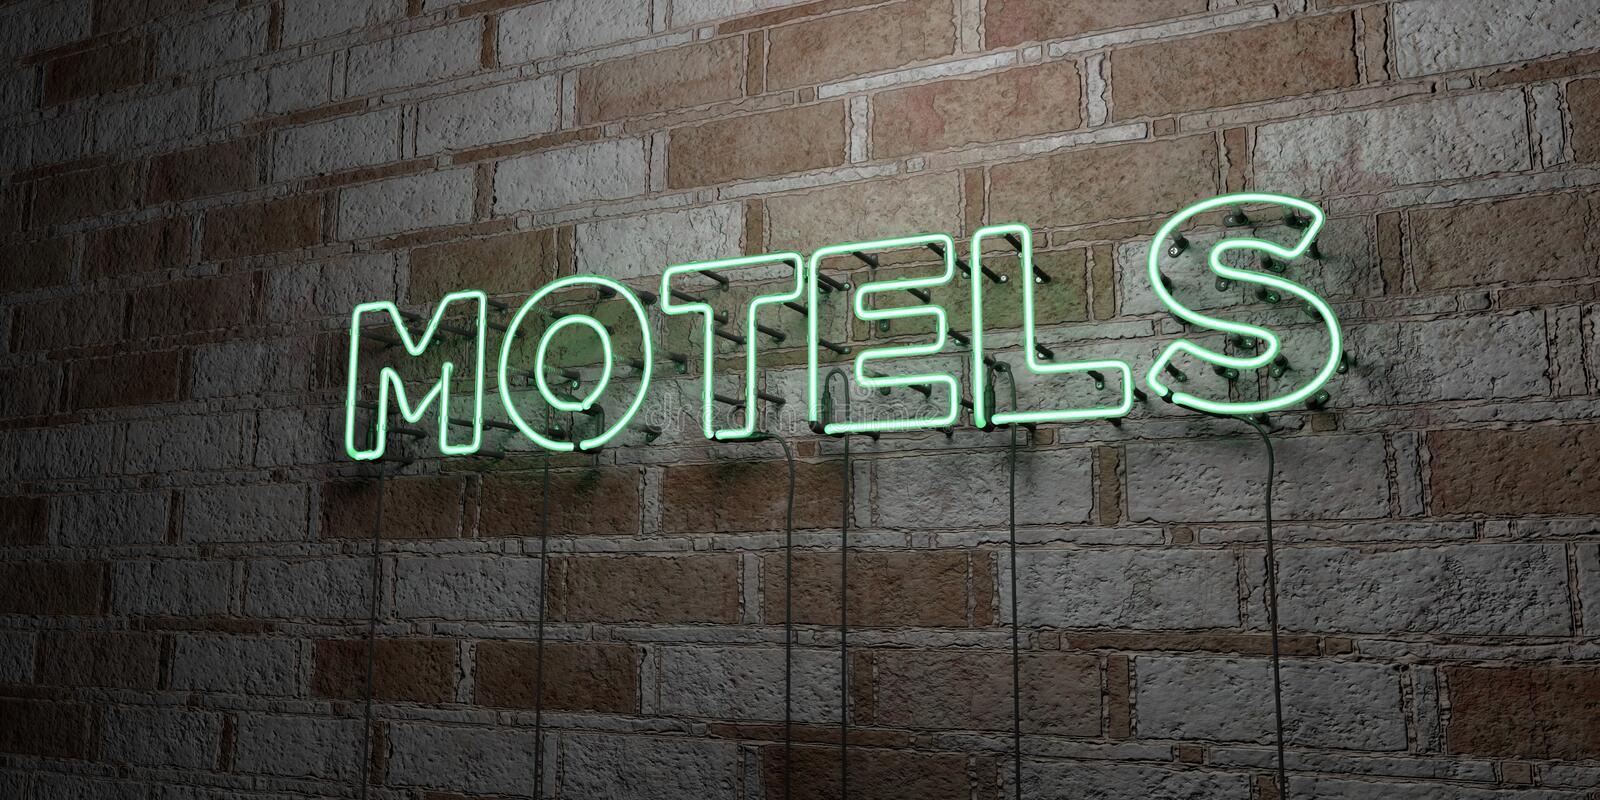 MOTELS - Glowing Neon Sign on stonework wall - 3D rendered royalty free stock illustration. Can be used for online banner ads and direct mailers royalty free illustration